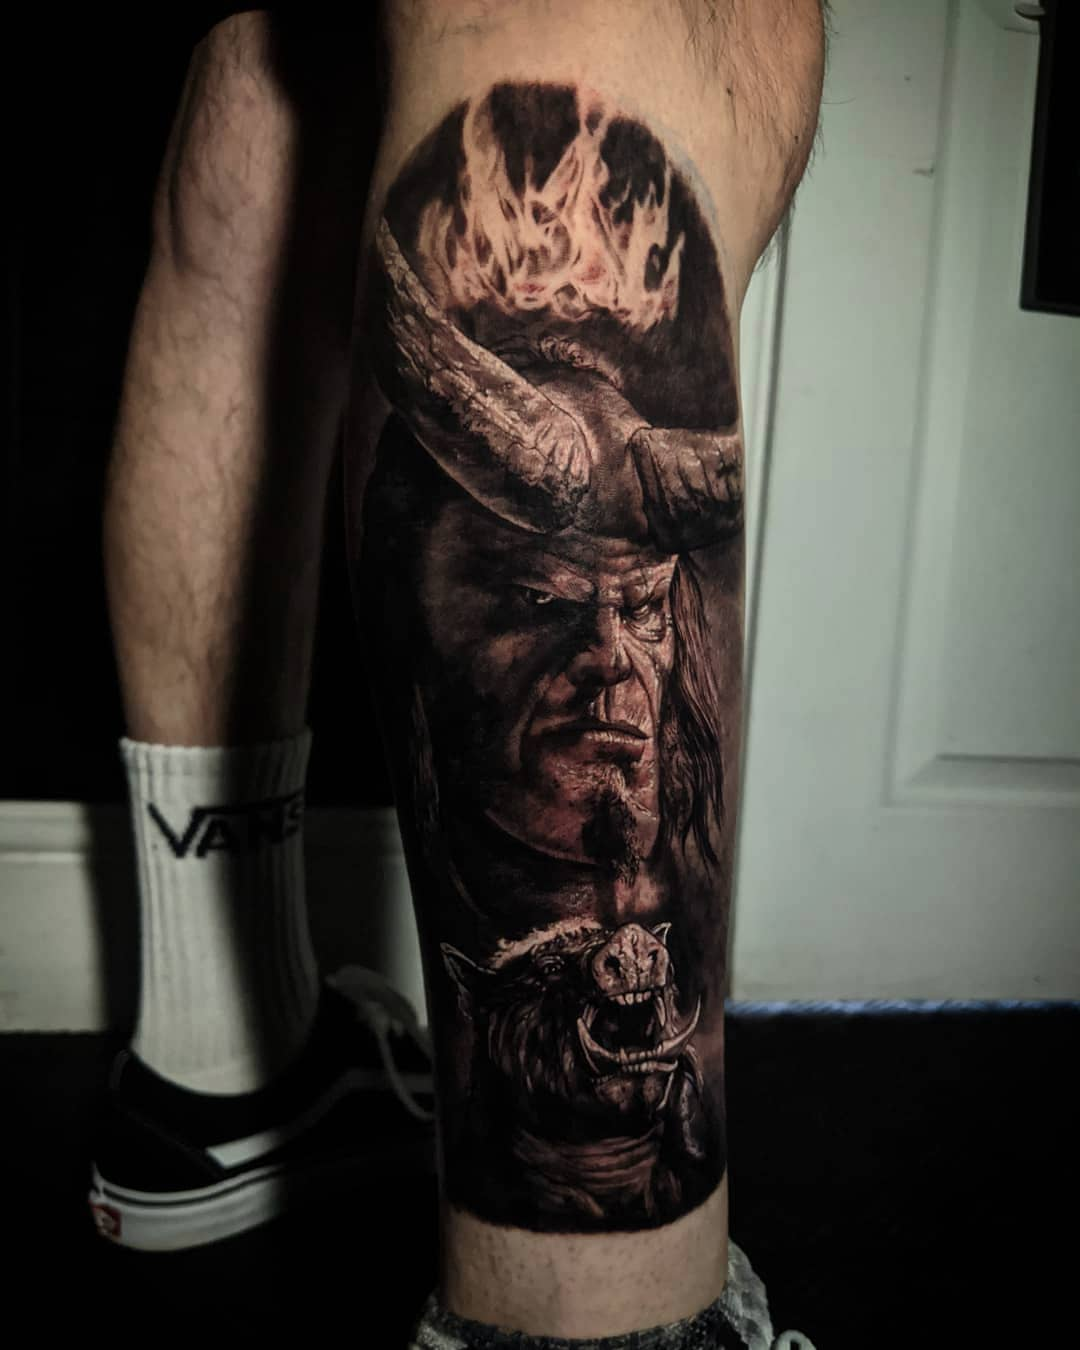 Danny Birtwistle, Ink Envy